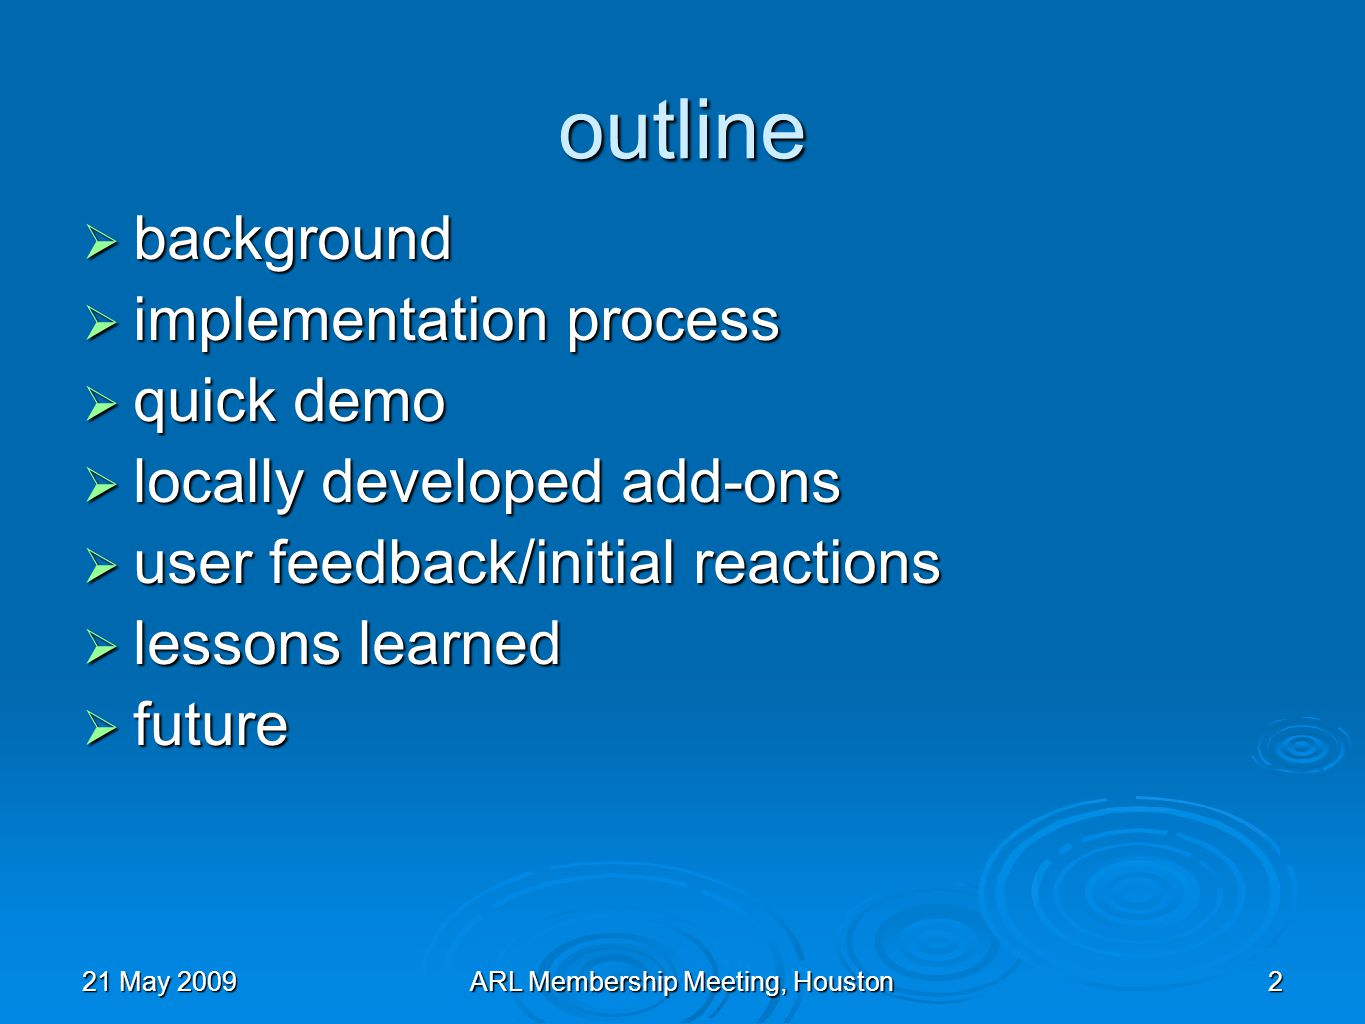 21 May 2009ARL Membership Meeting, Houston2 outline background background implementation process implementation process quick demo quick demo locally developed add-ons locally developed add-ons user feedback/initial reactions user feedback/initial reactions lessons learned lessons learned future future